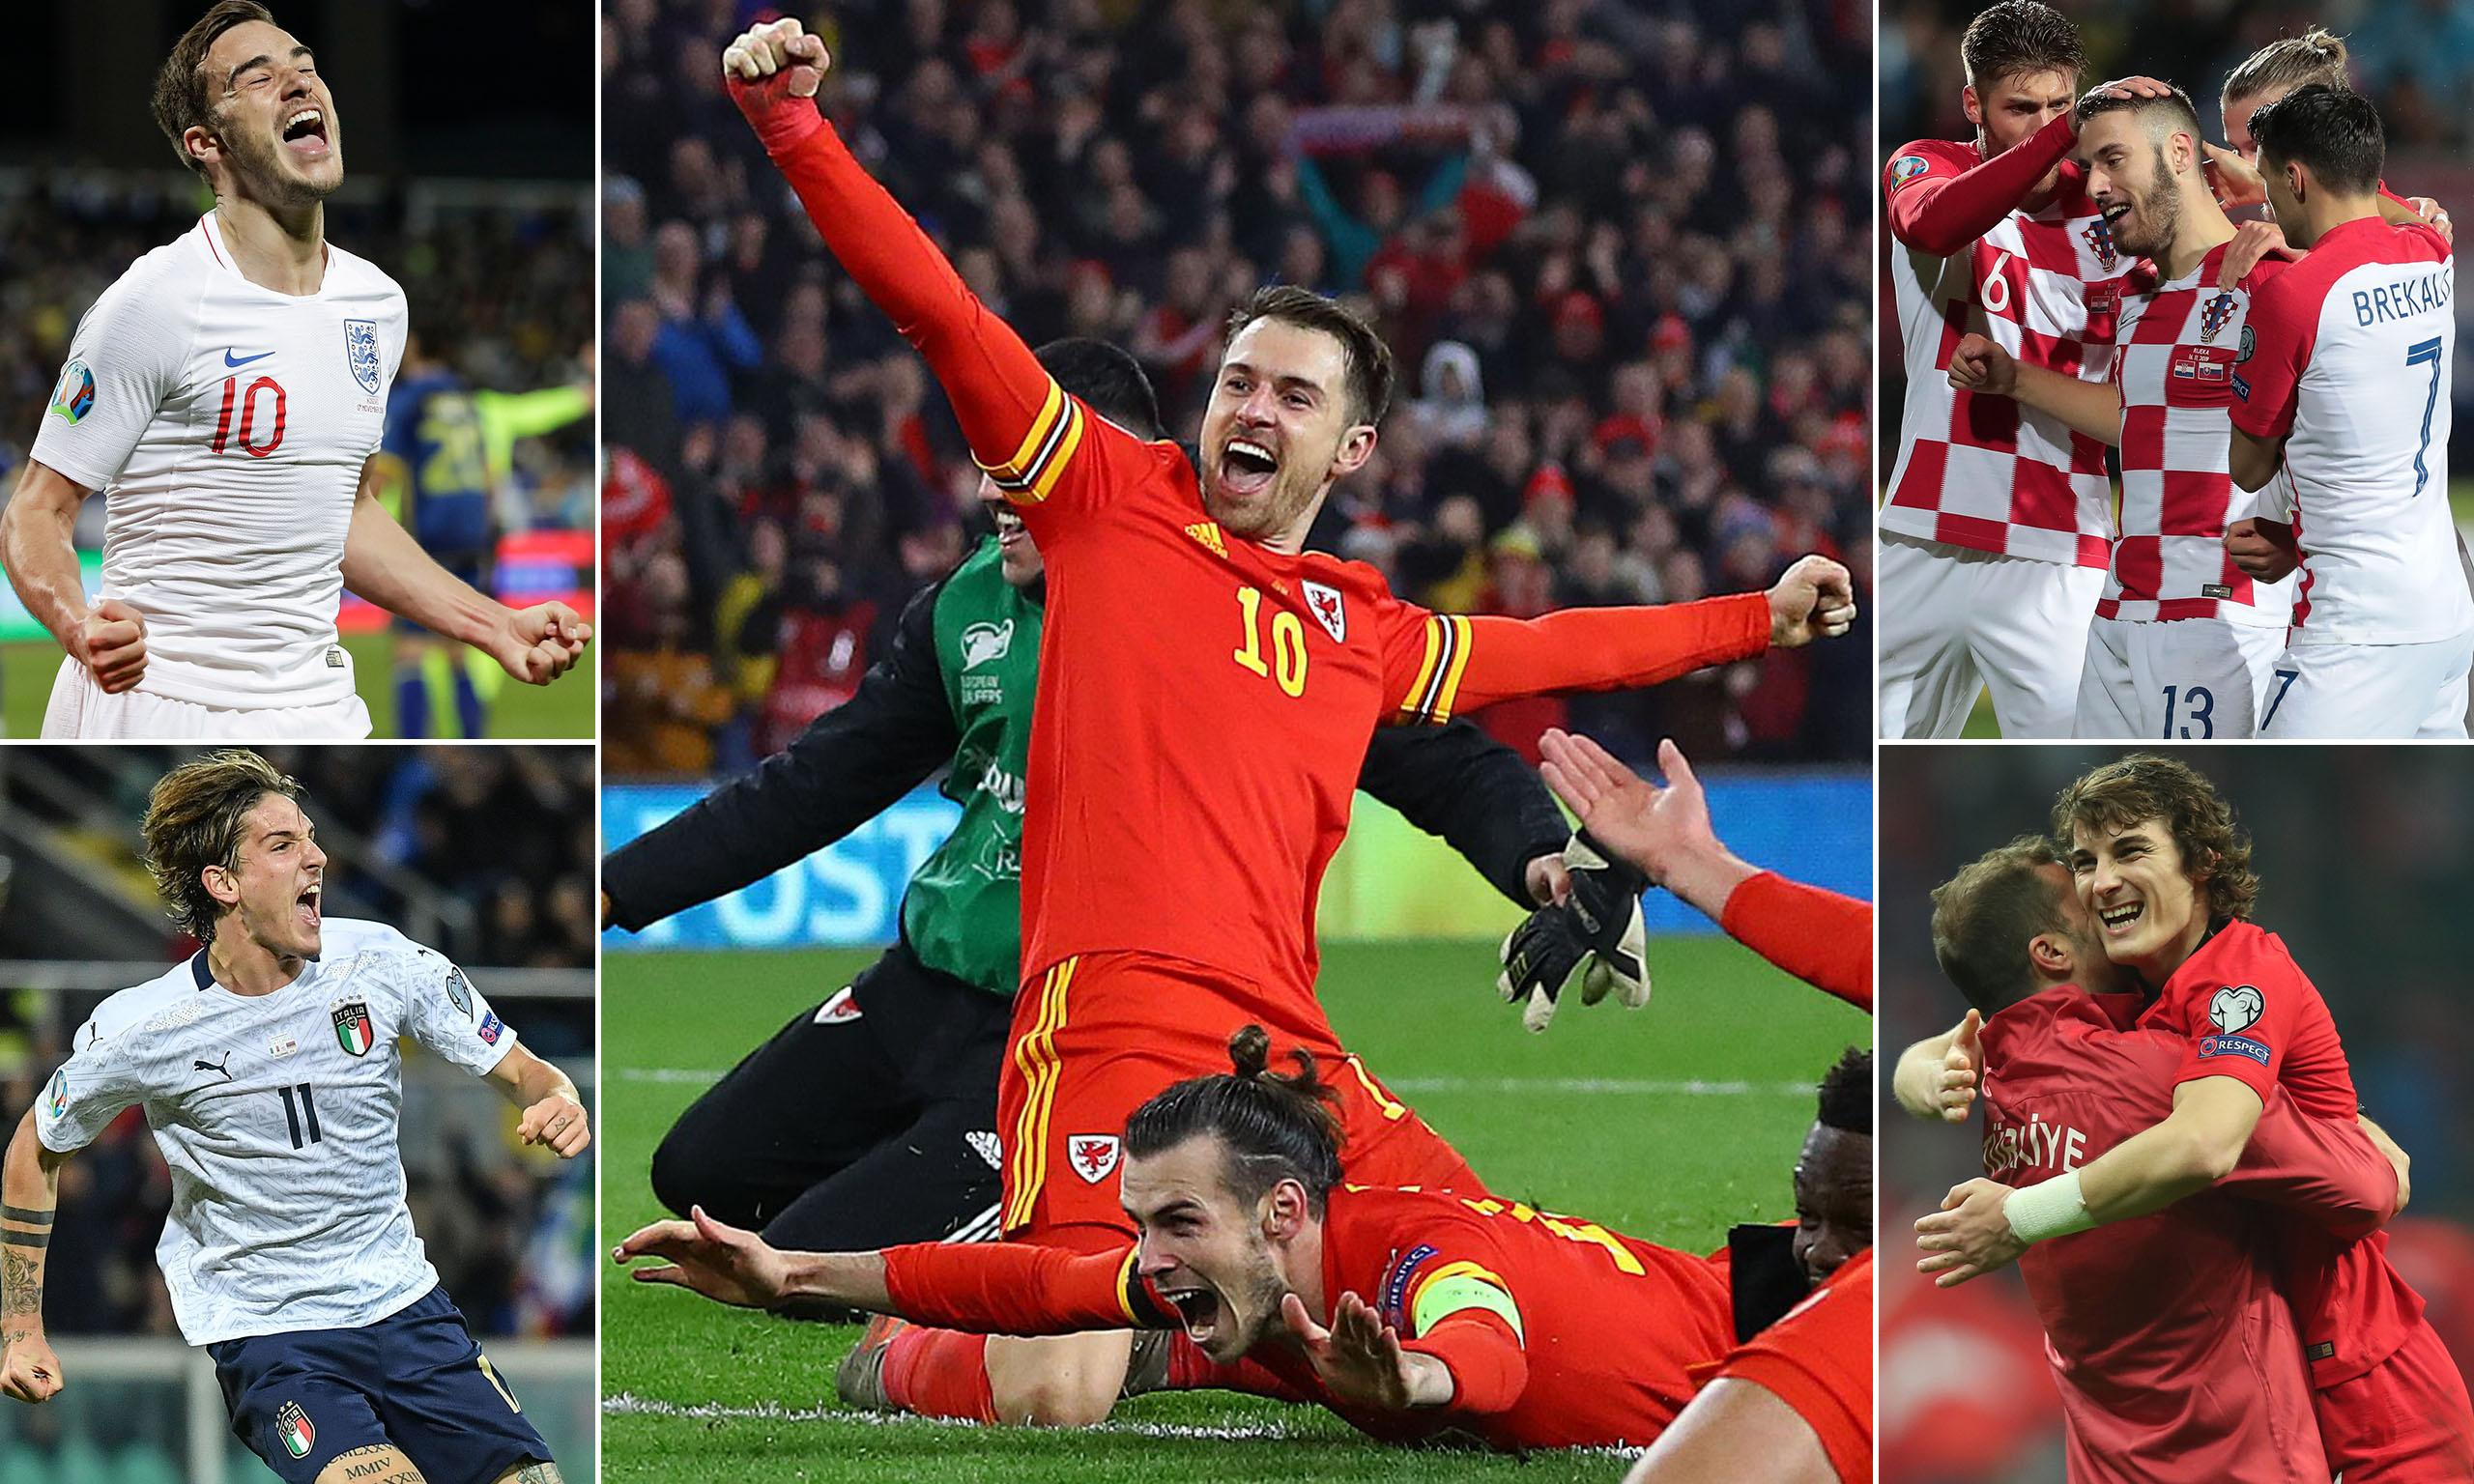 Euro 2020 qualifiers: 10 talking points from this week's action